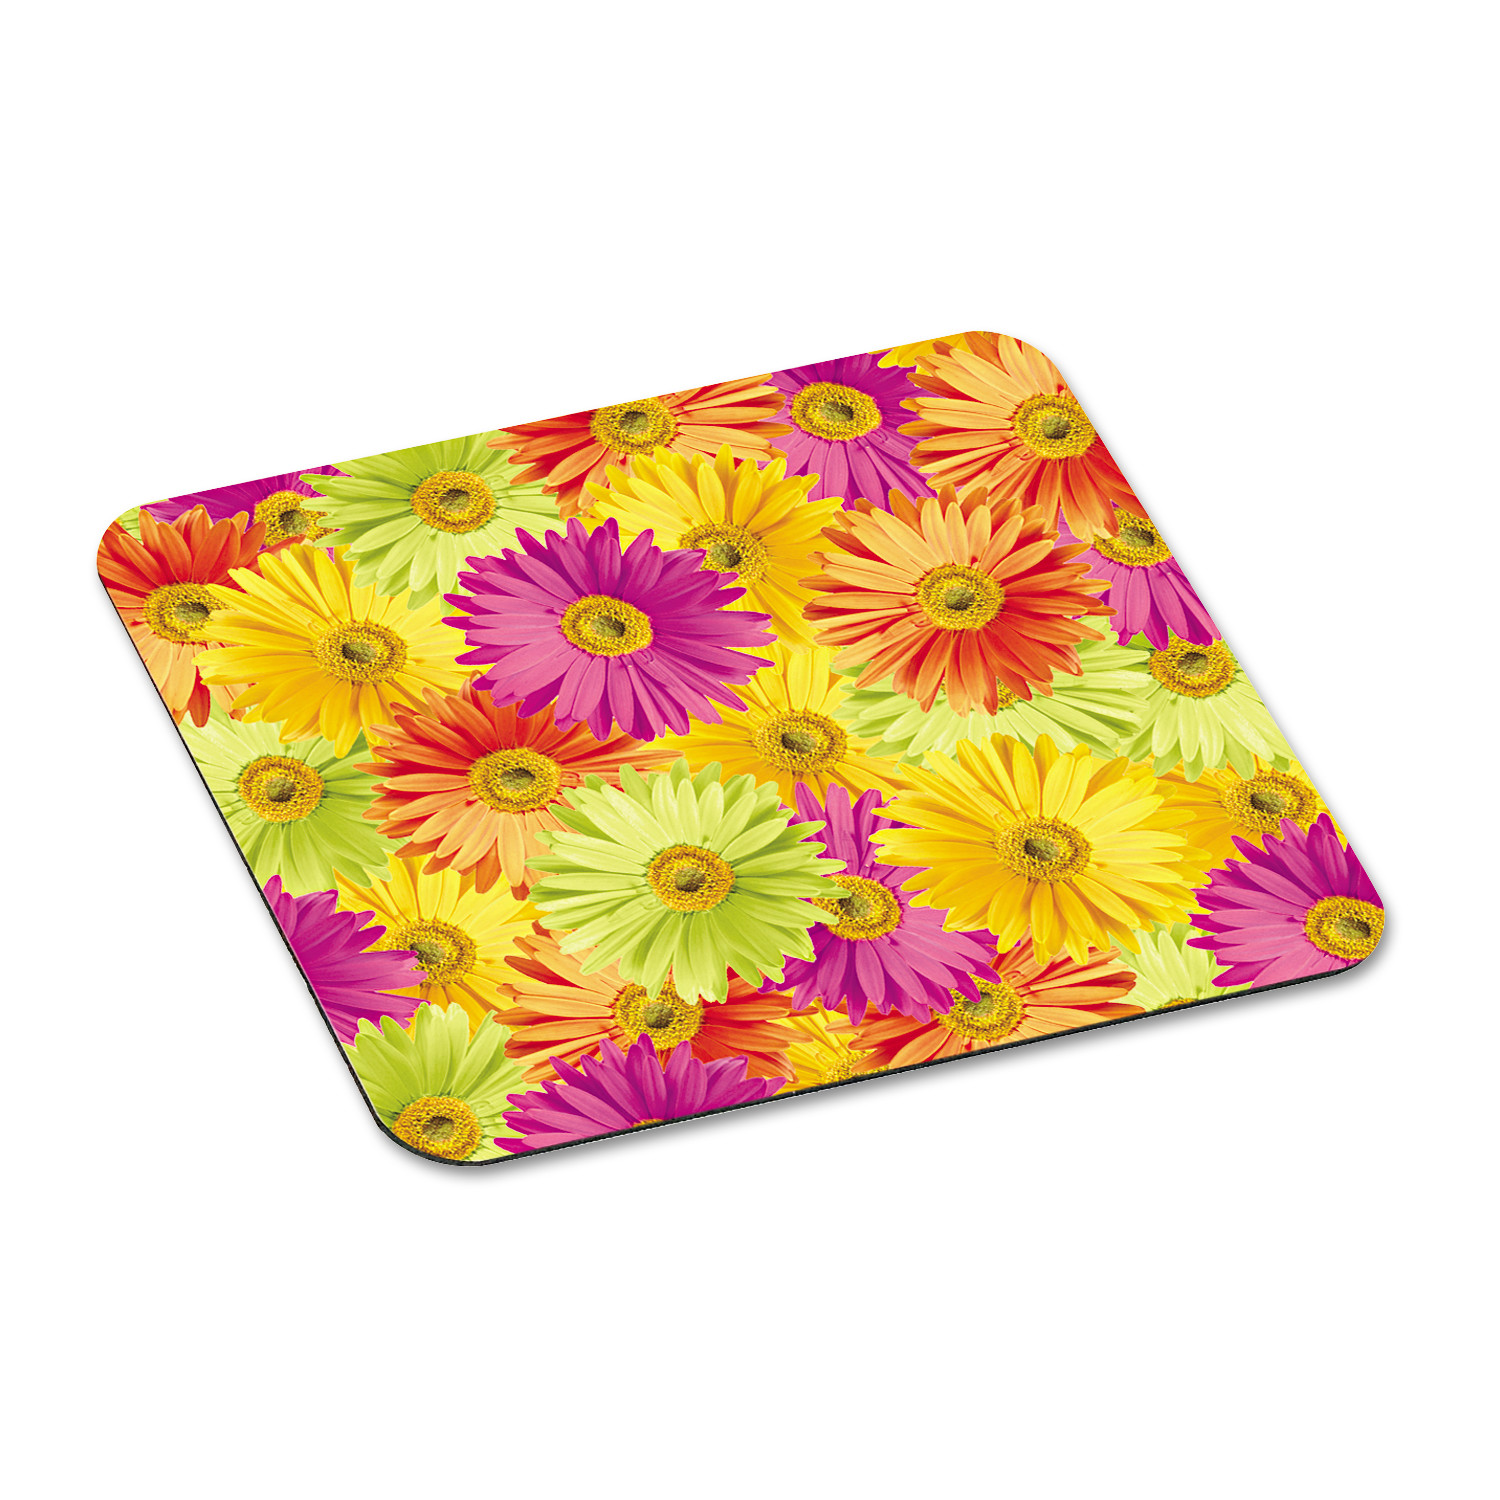 "3M Mouse Pad with Precise Mousing Surface, 9"" x 8"" x 1/8"", Daisy Design"